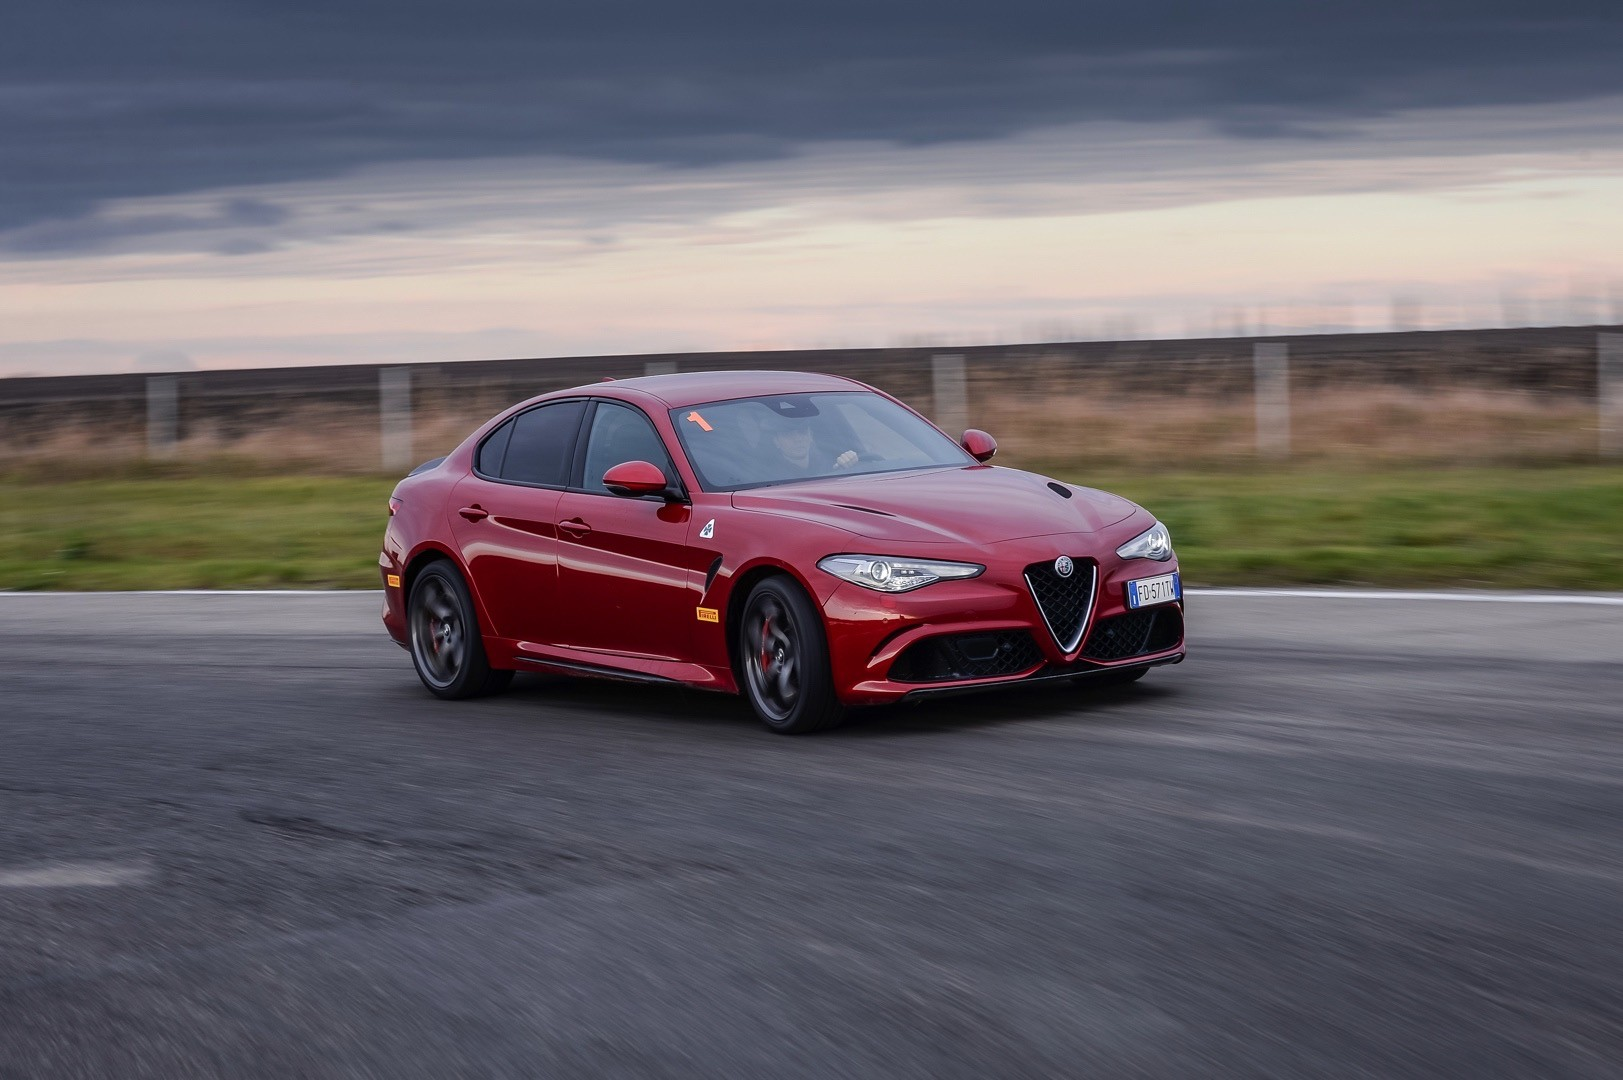 Leaked: Alfa Romeo Giulia Getting 350 HP 2-Liter Turbo. Is